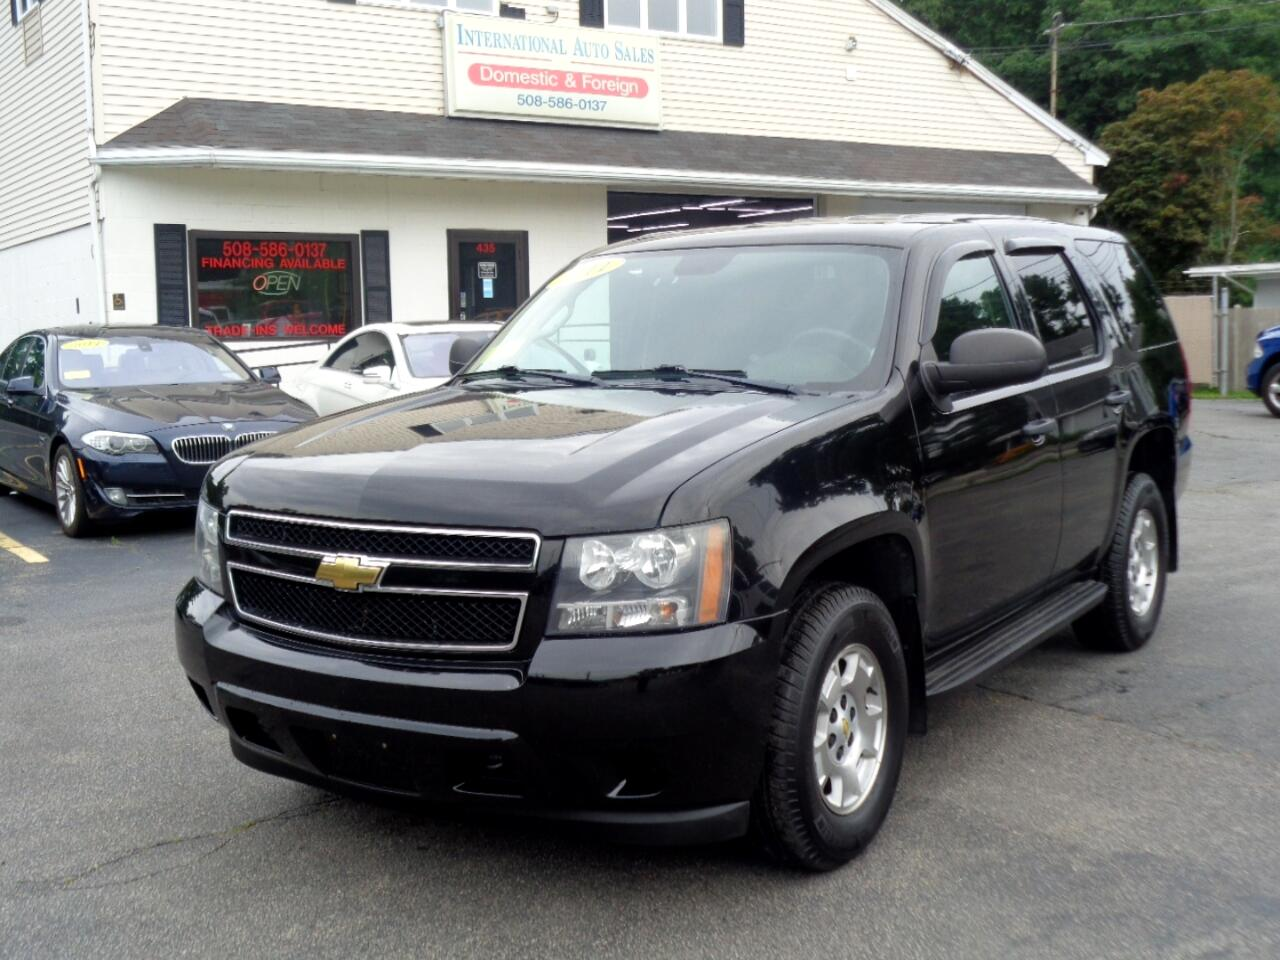 2011 Chevrolet Tahoe Police Special Services